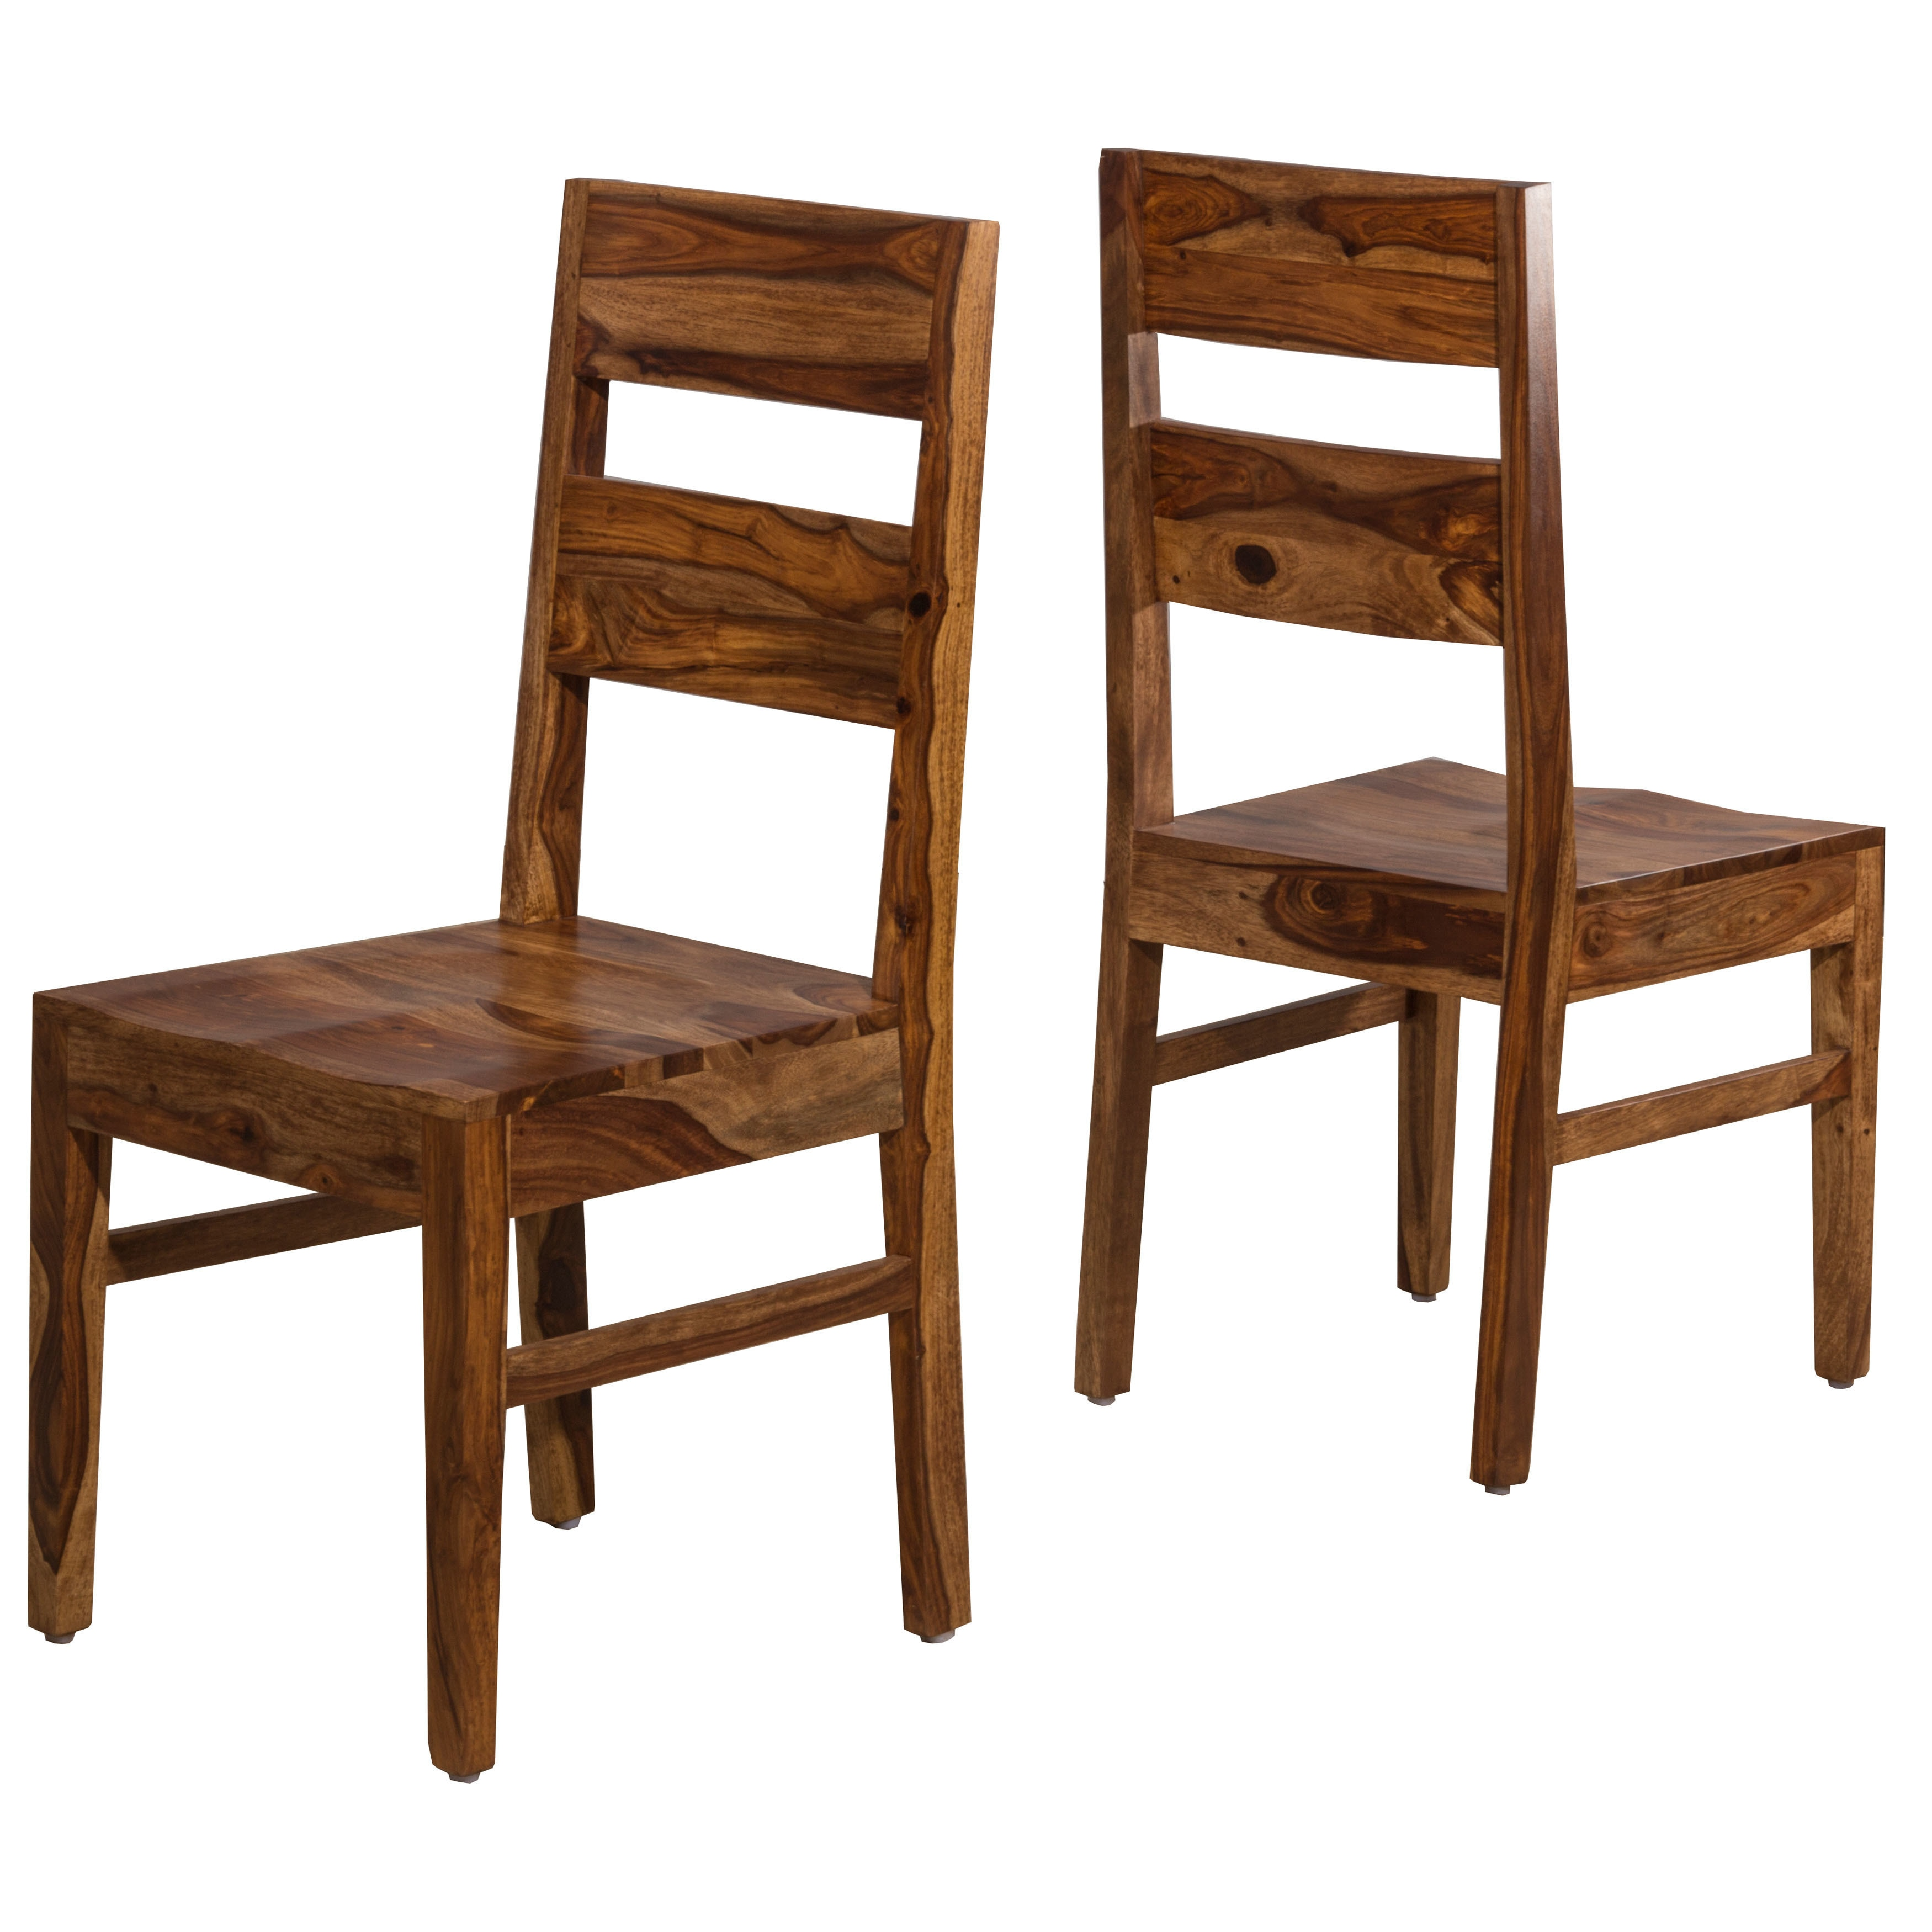 Shop Black Friday Deals On Hillsdale Furniture Emerson Natural Sheesham Wood Dining Chair Overstock 16343052